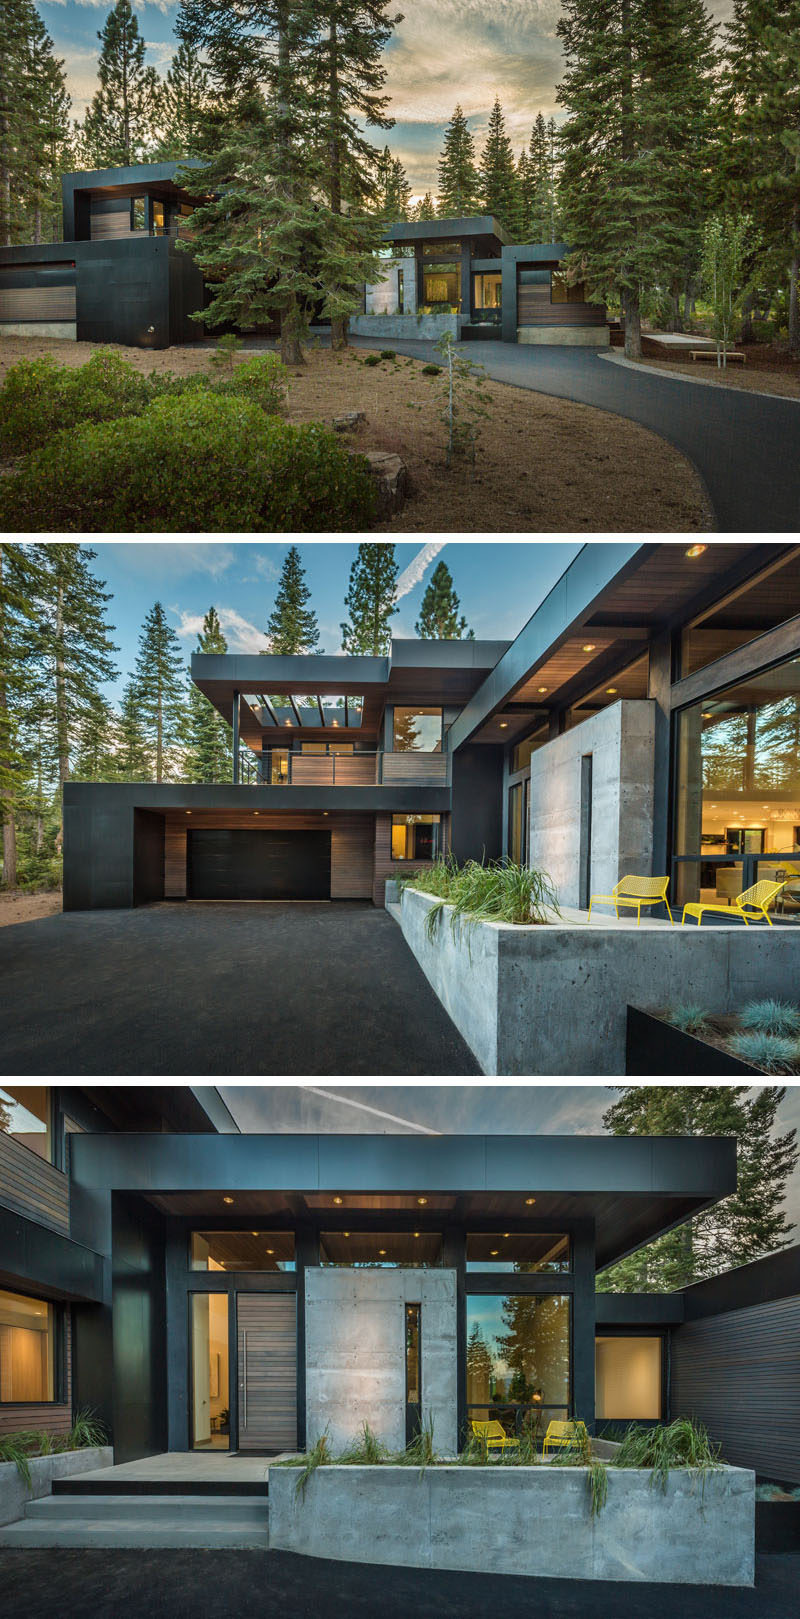 The Beautiful House In World Luxury 18 Modern Houses In the forest